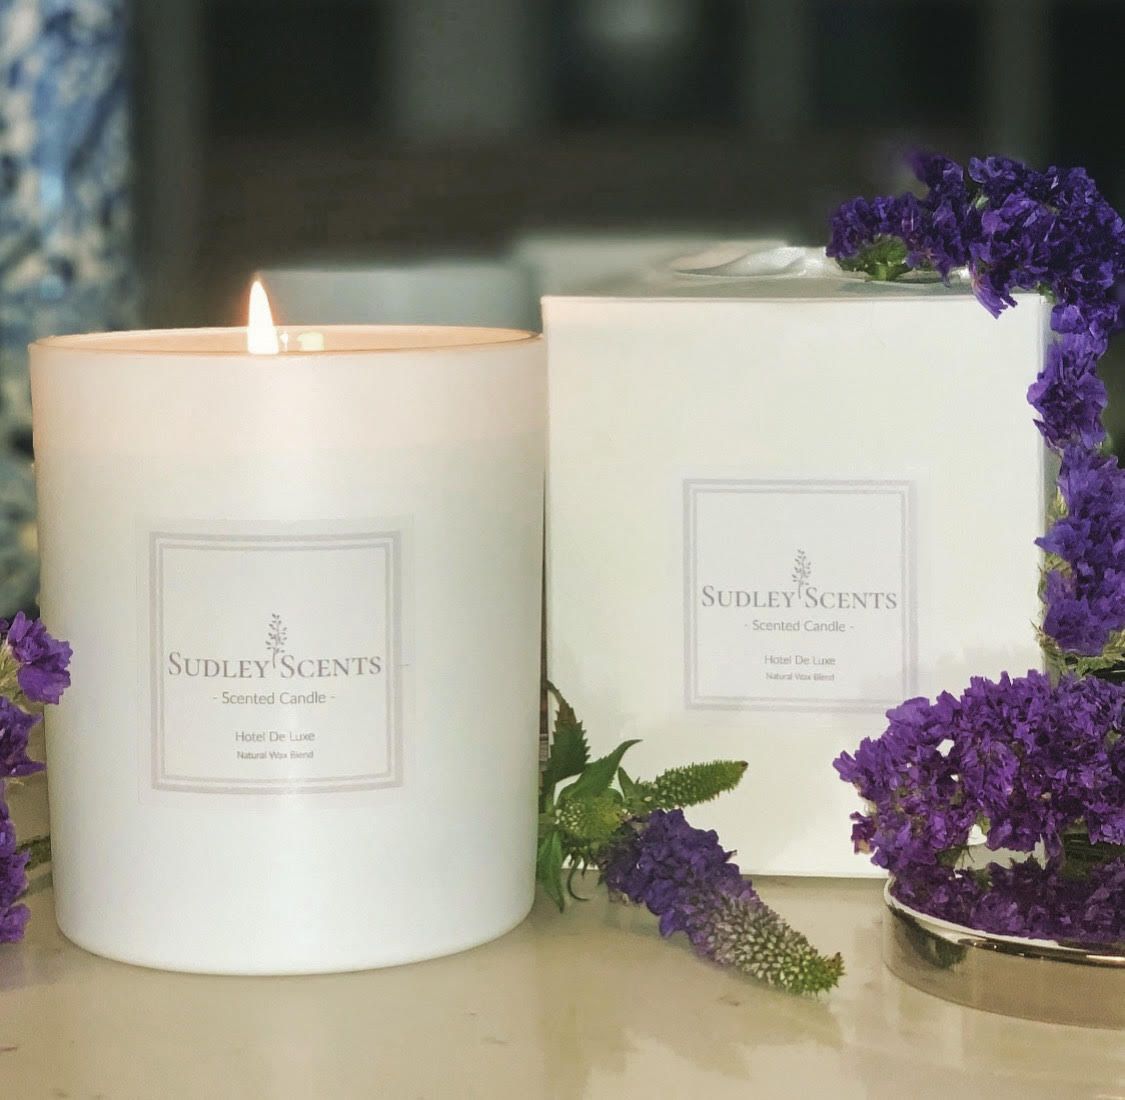 Hotel De Luxe Candle